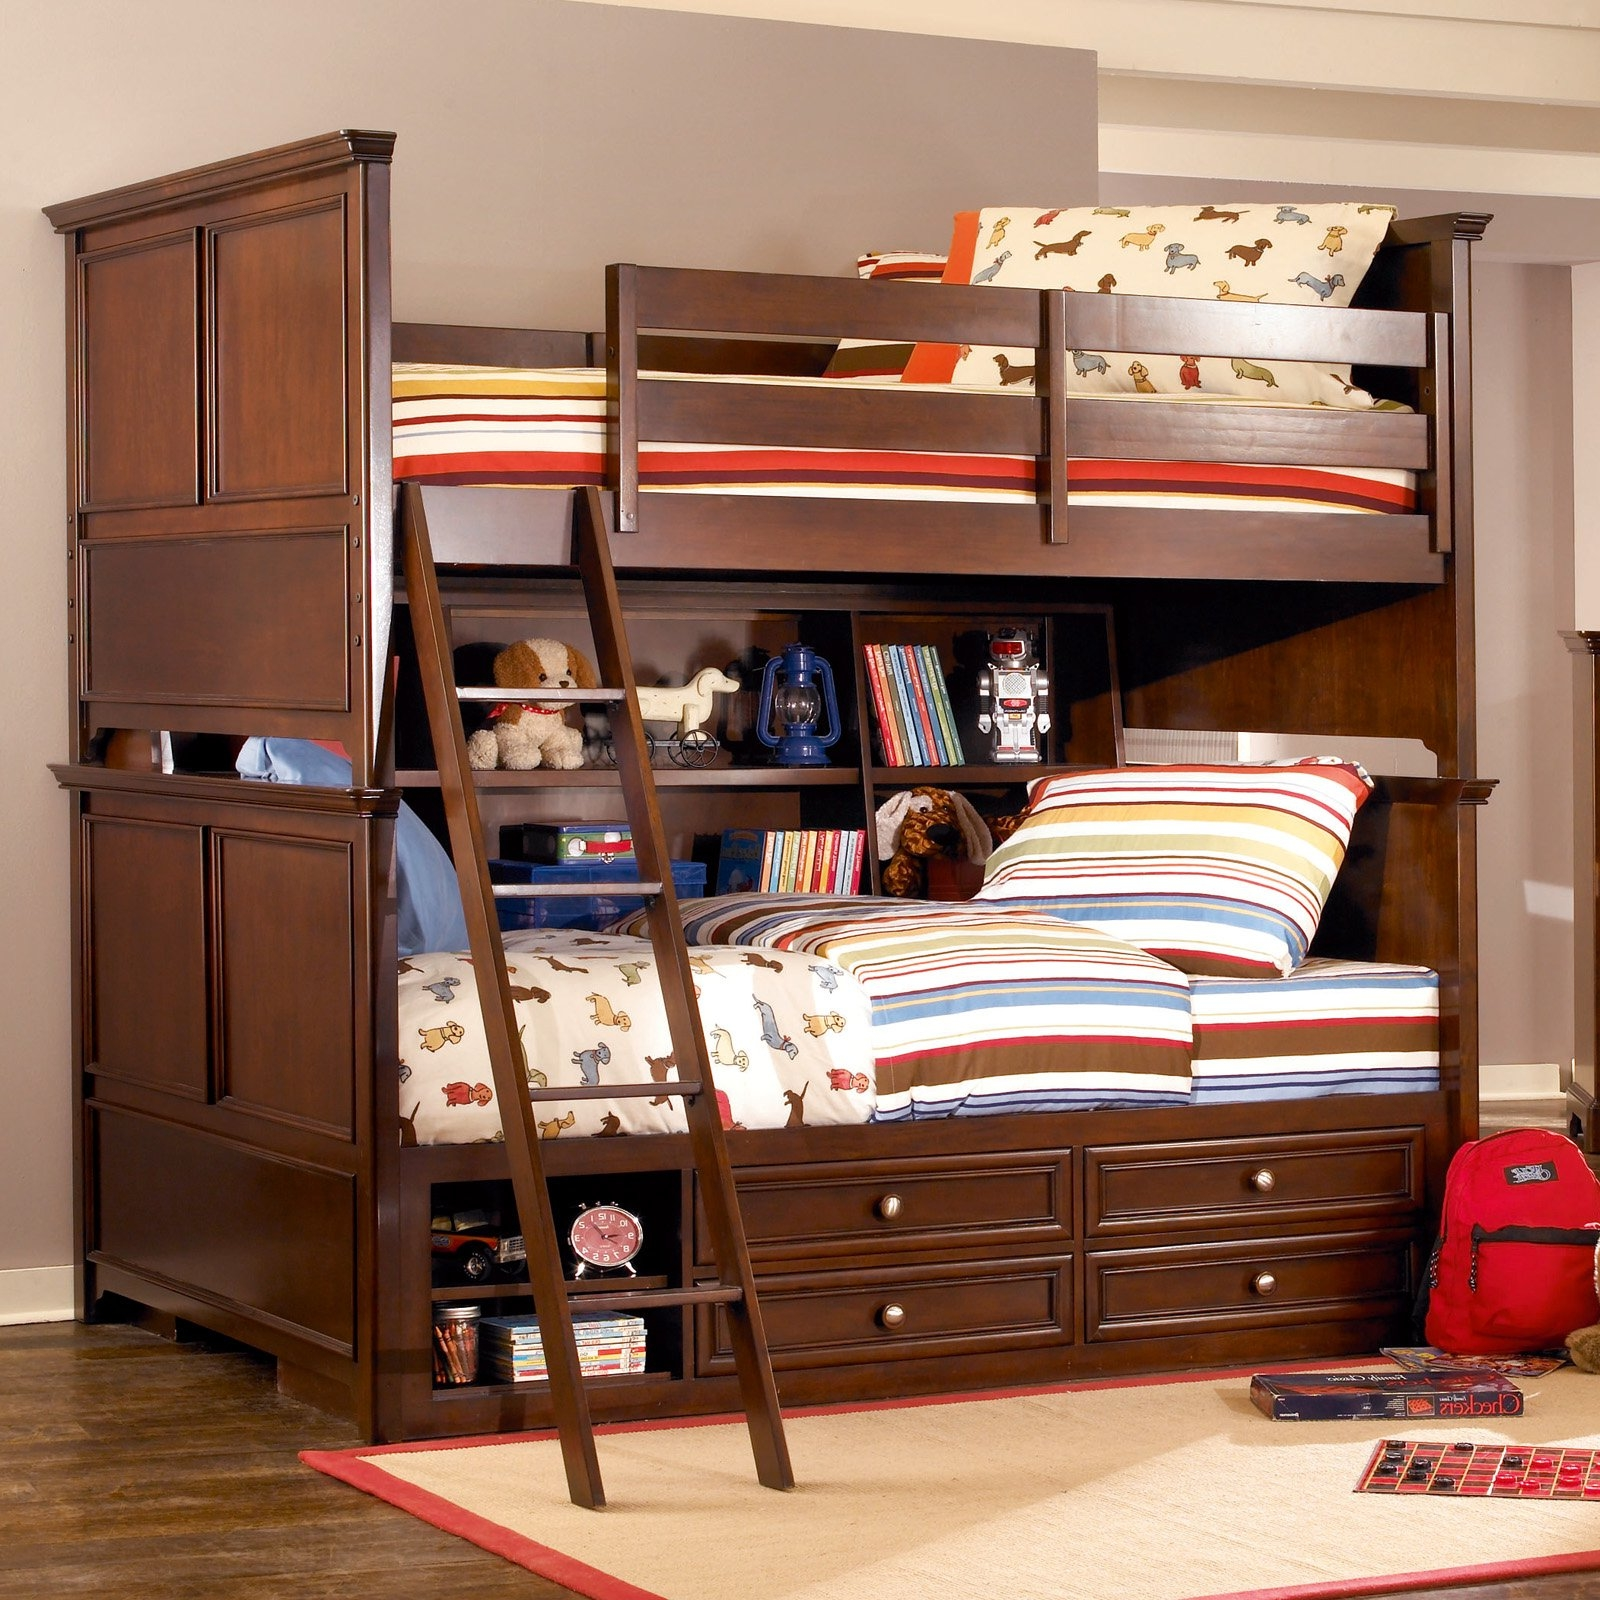 Kids Bedroom Furniture Elegant Dark Brown Wooden Bunk Bed With Full Bookcase Storage Design Wonderful Bookshelf Headboards Design Ideas What Everybody Ought (Image 15 of 28)